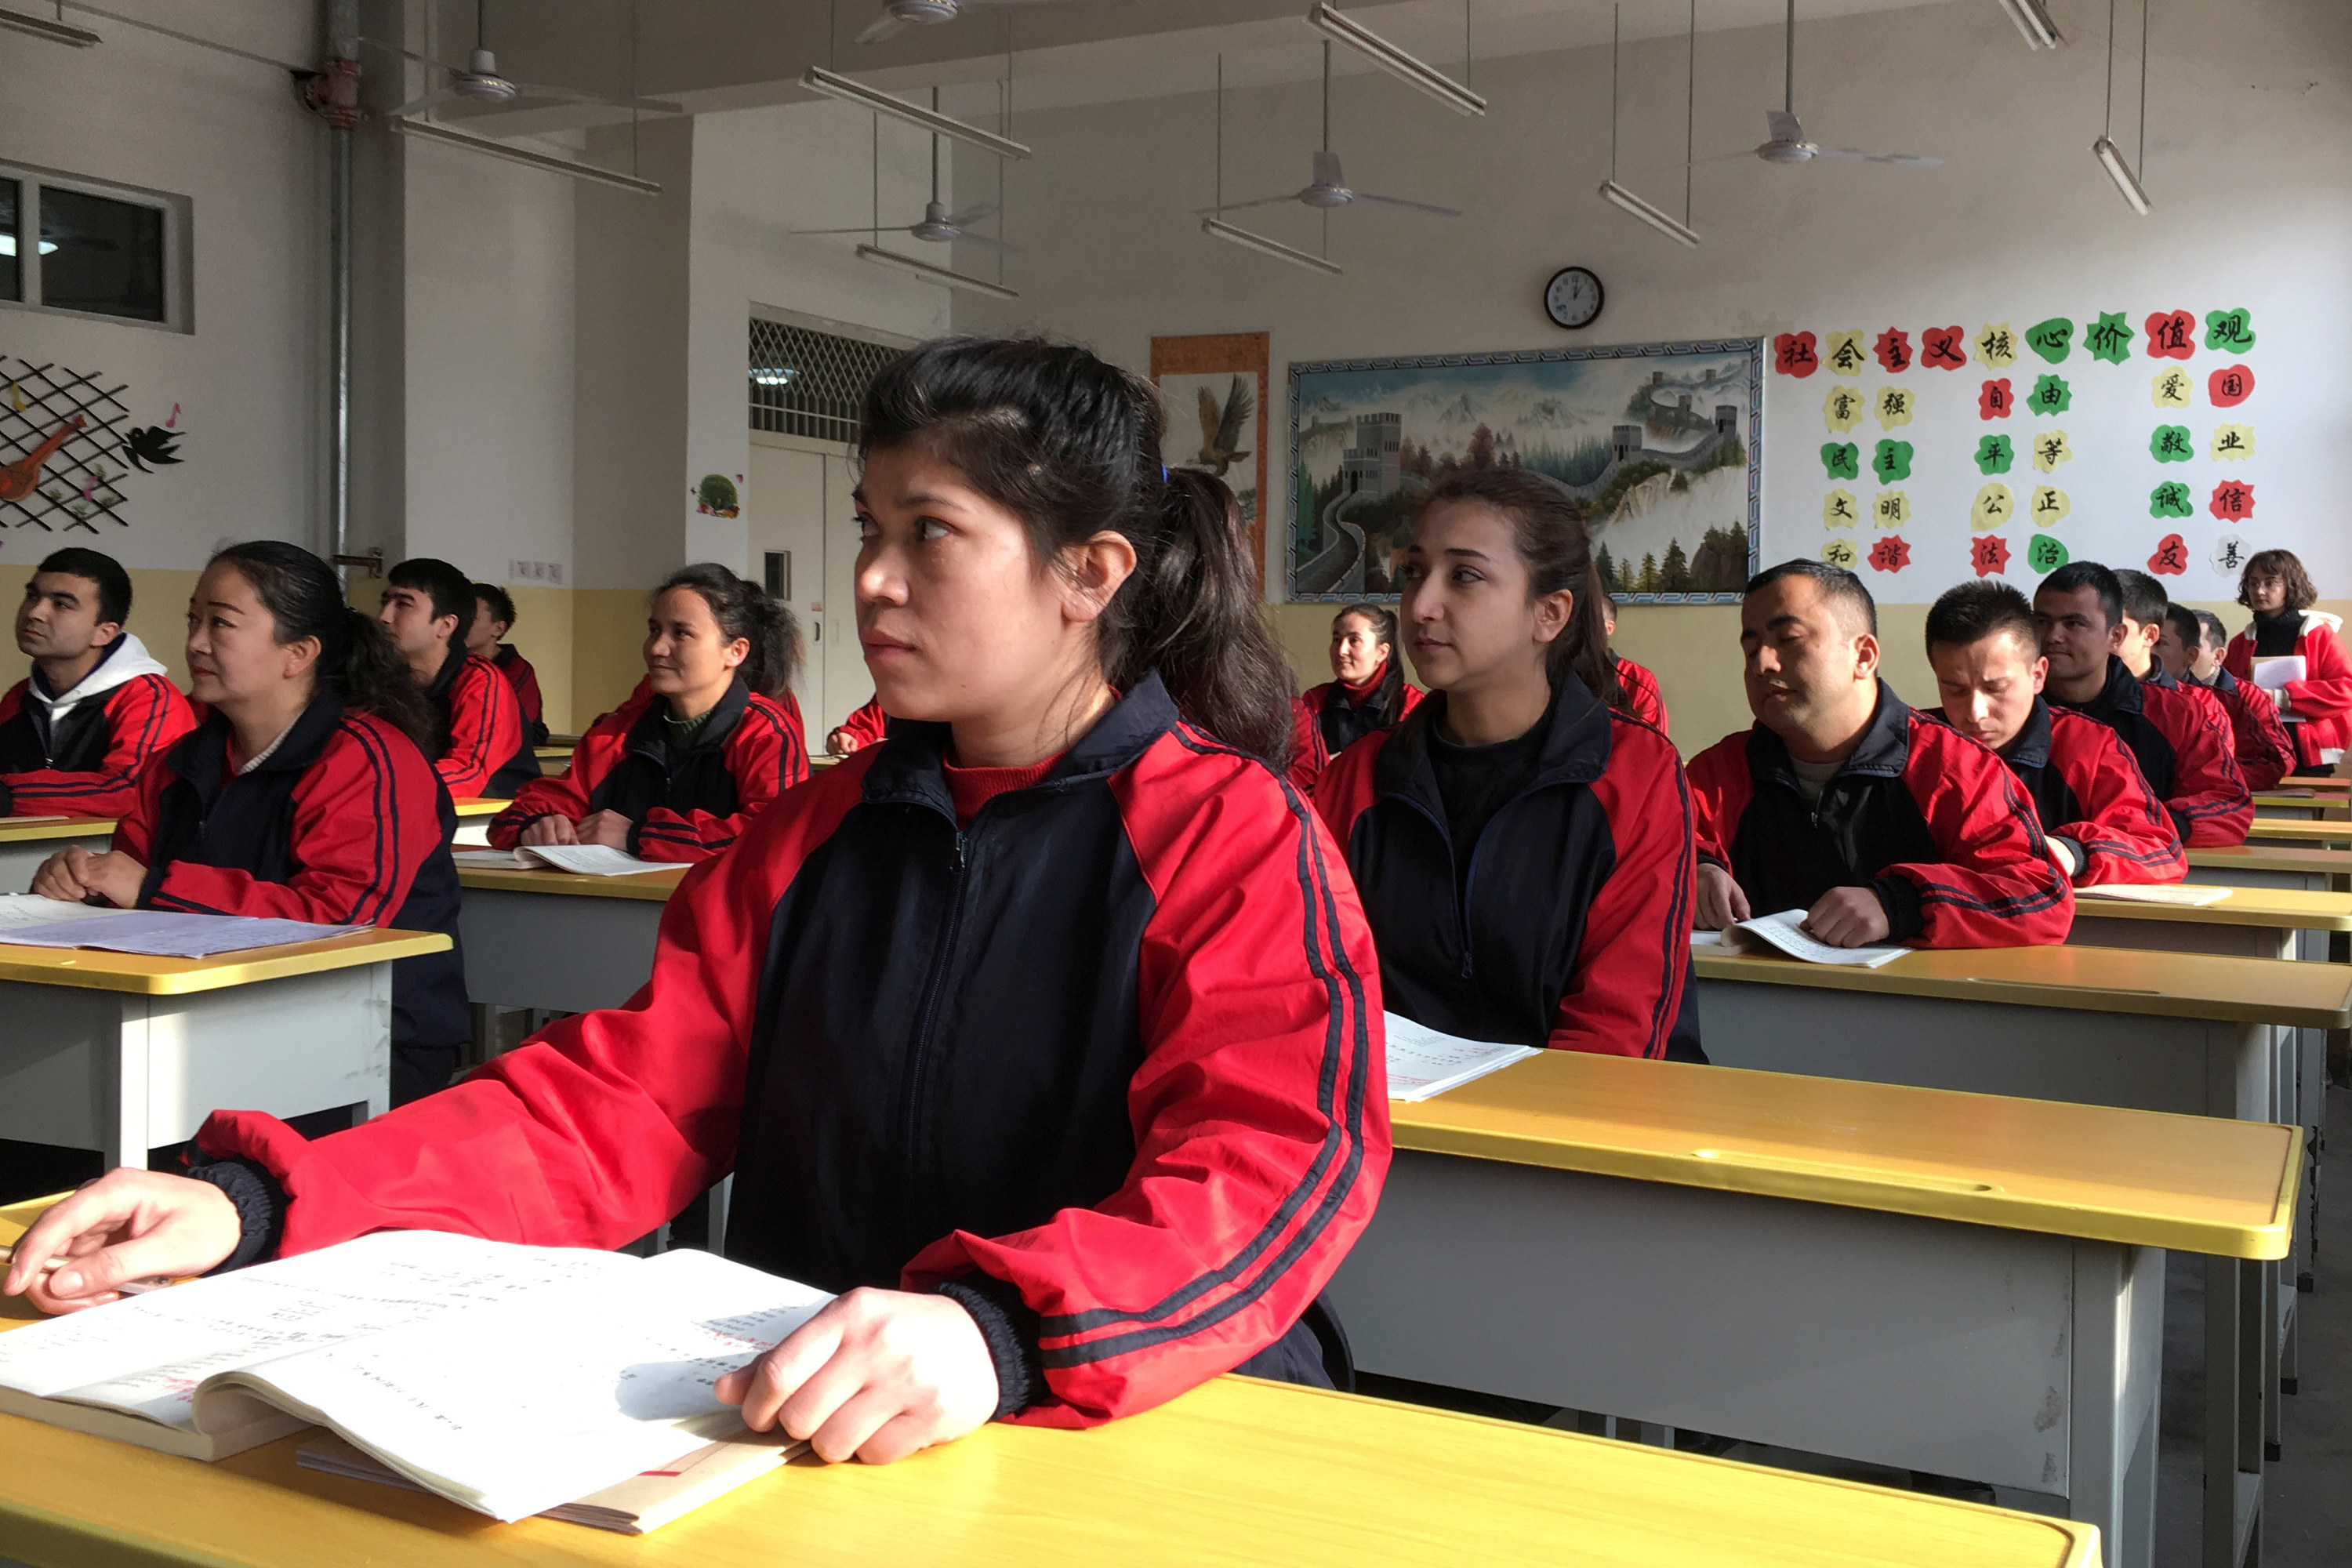 Adult students in matching jumpsuits sit in rows of desks